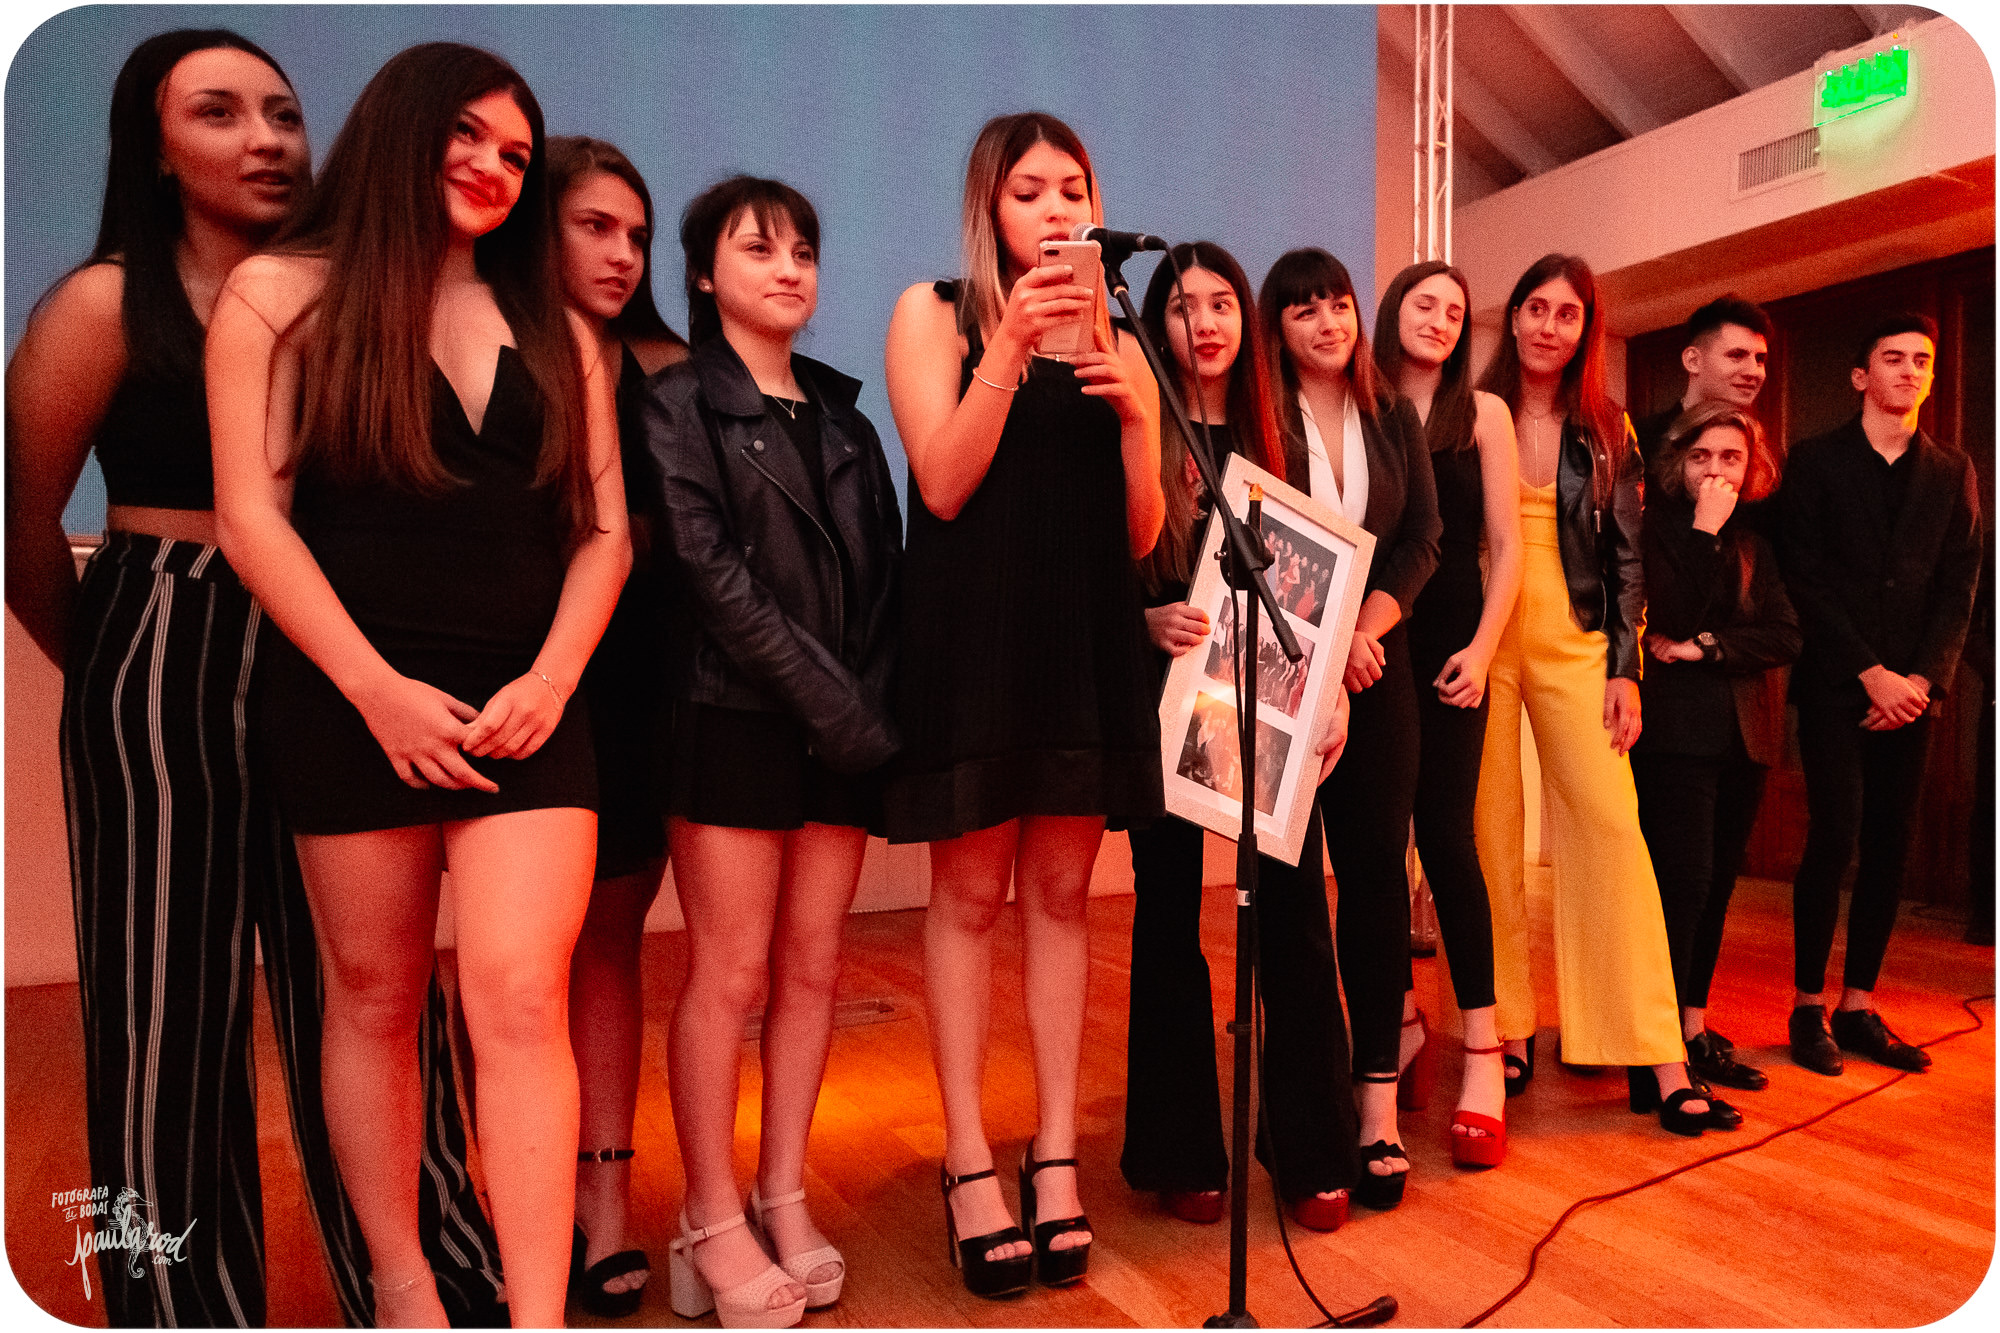 fotografia_documental_para_quinces_en_castelar (3).jpg